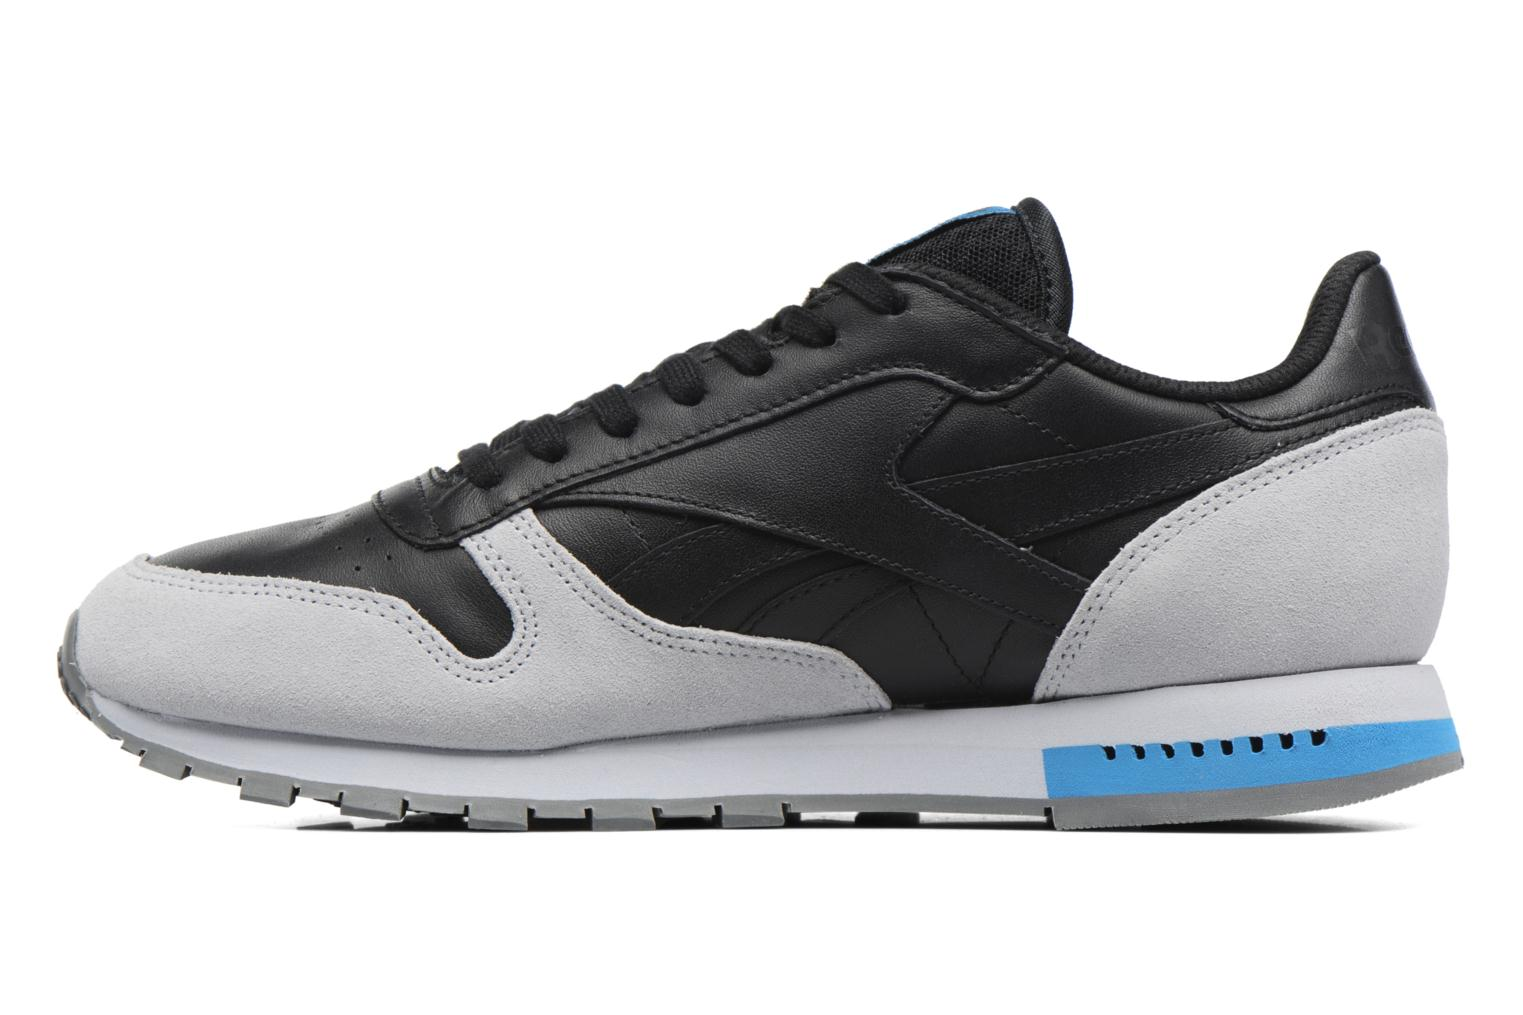 Cl Leather Grey Black/Cloud Grey/Alloy/Caribbean Teal